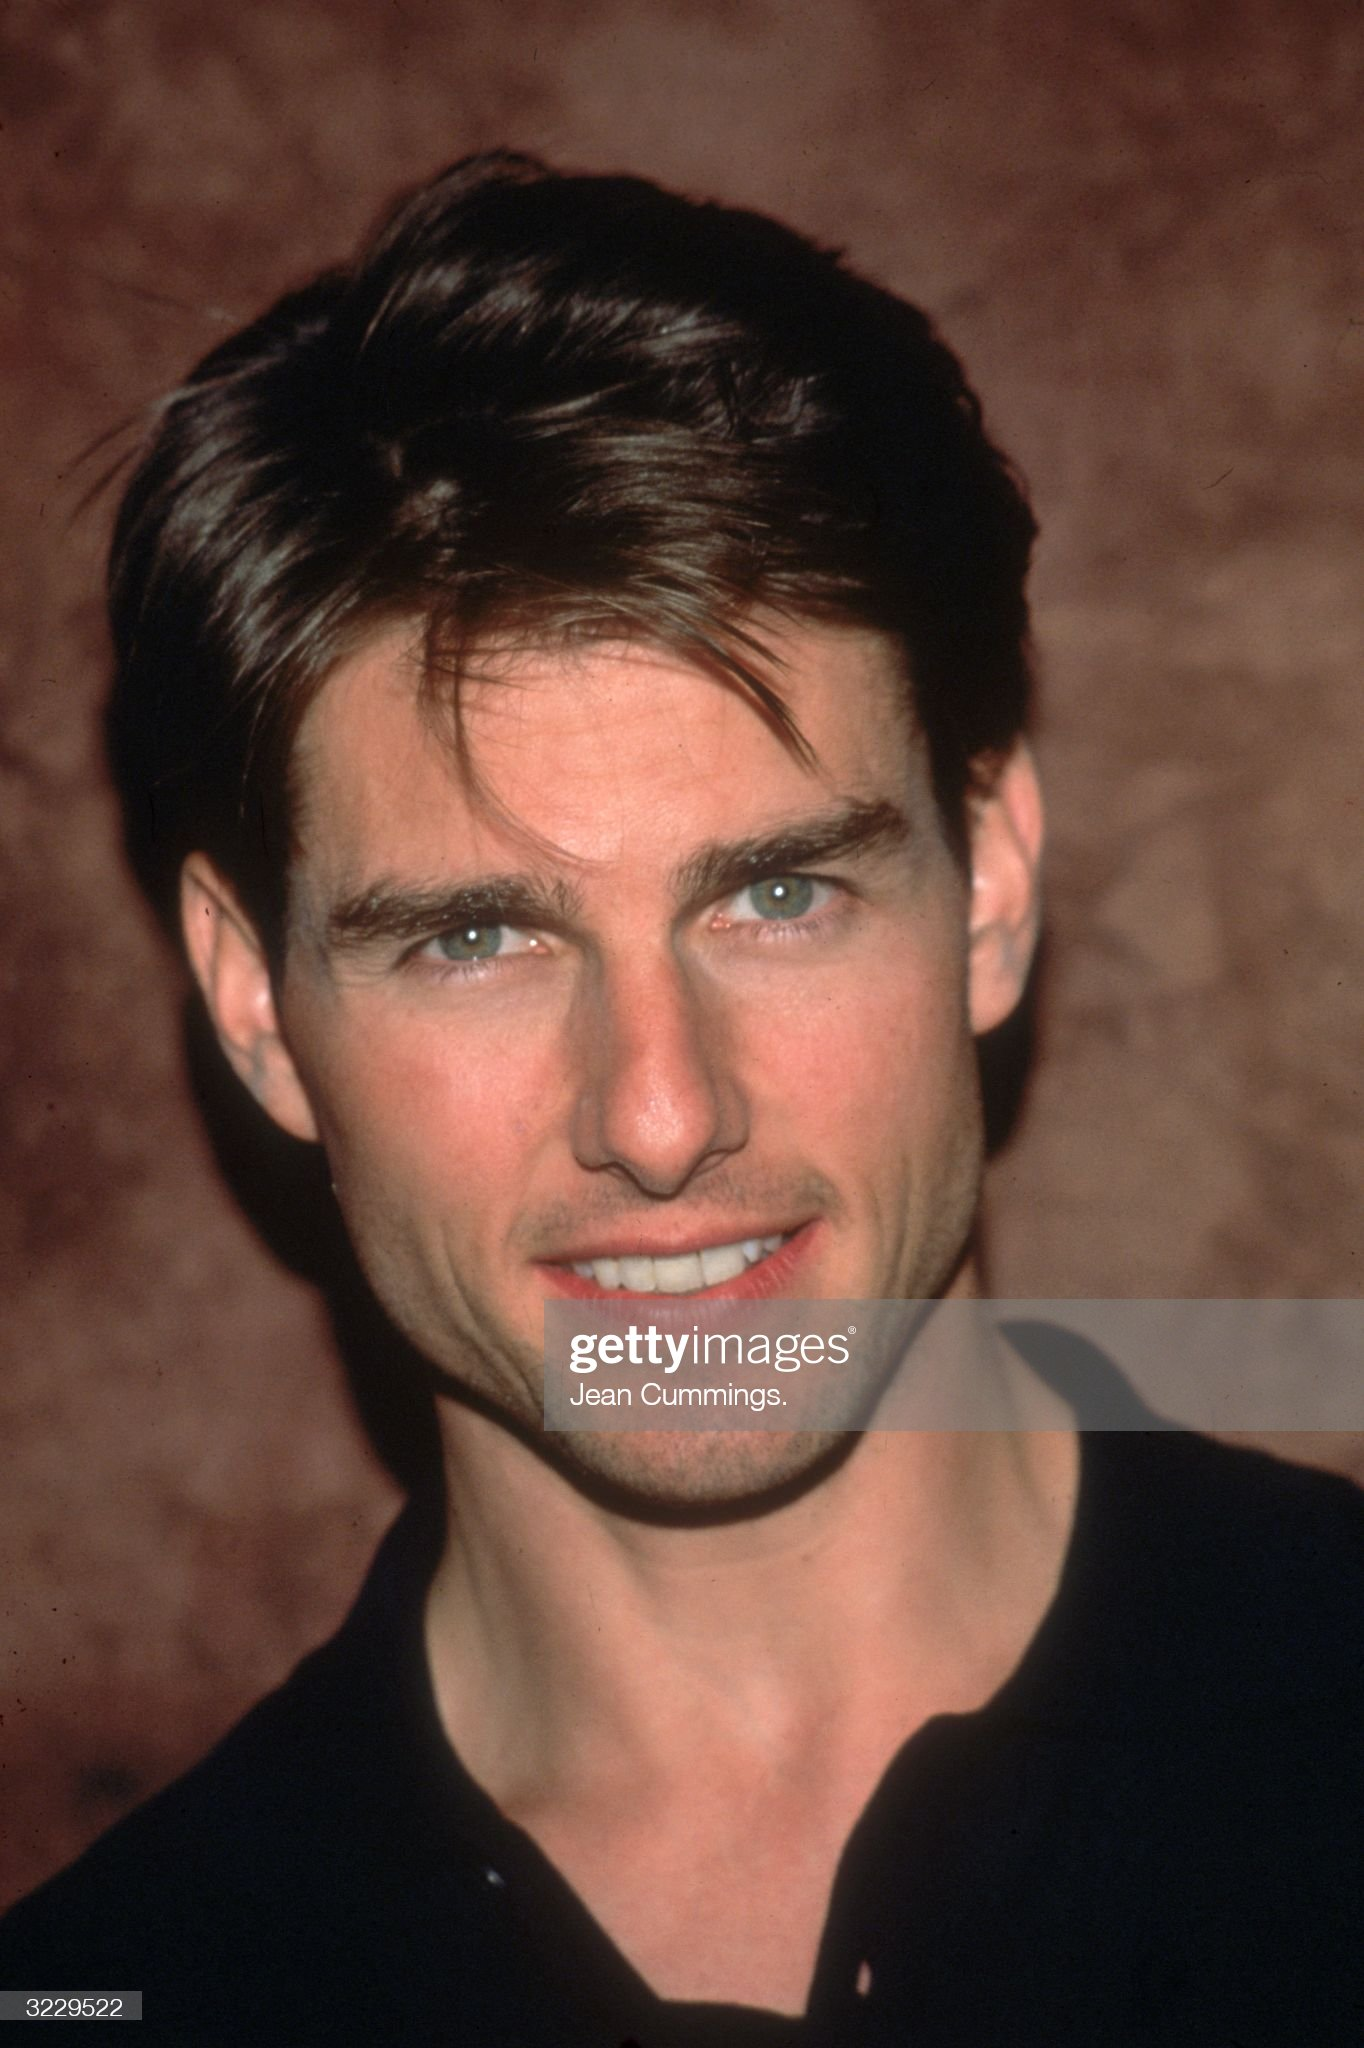 Tom Cruise (Galería de fotos) Headshot-of-american-actor-tom-cruise-smiling-in-a-black-shirt-in-of-picture-id3229522?s=2048x2048